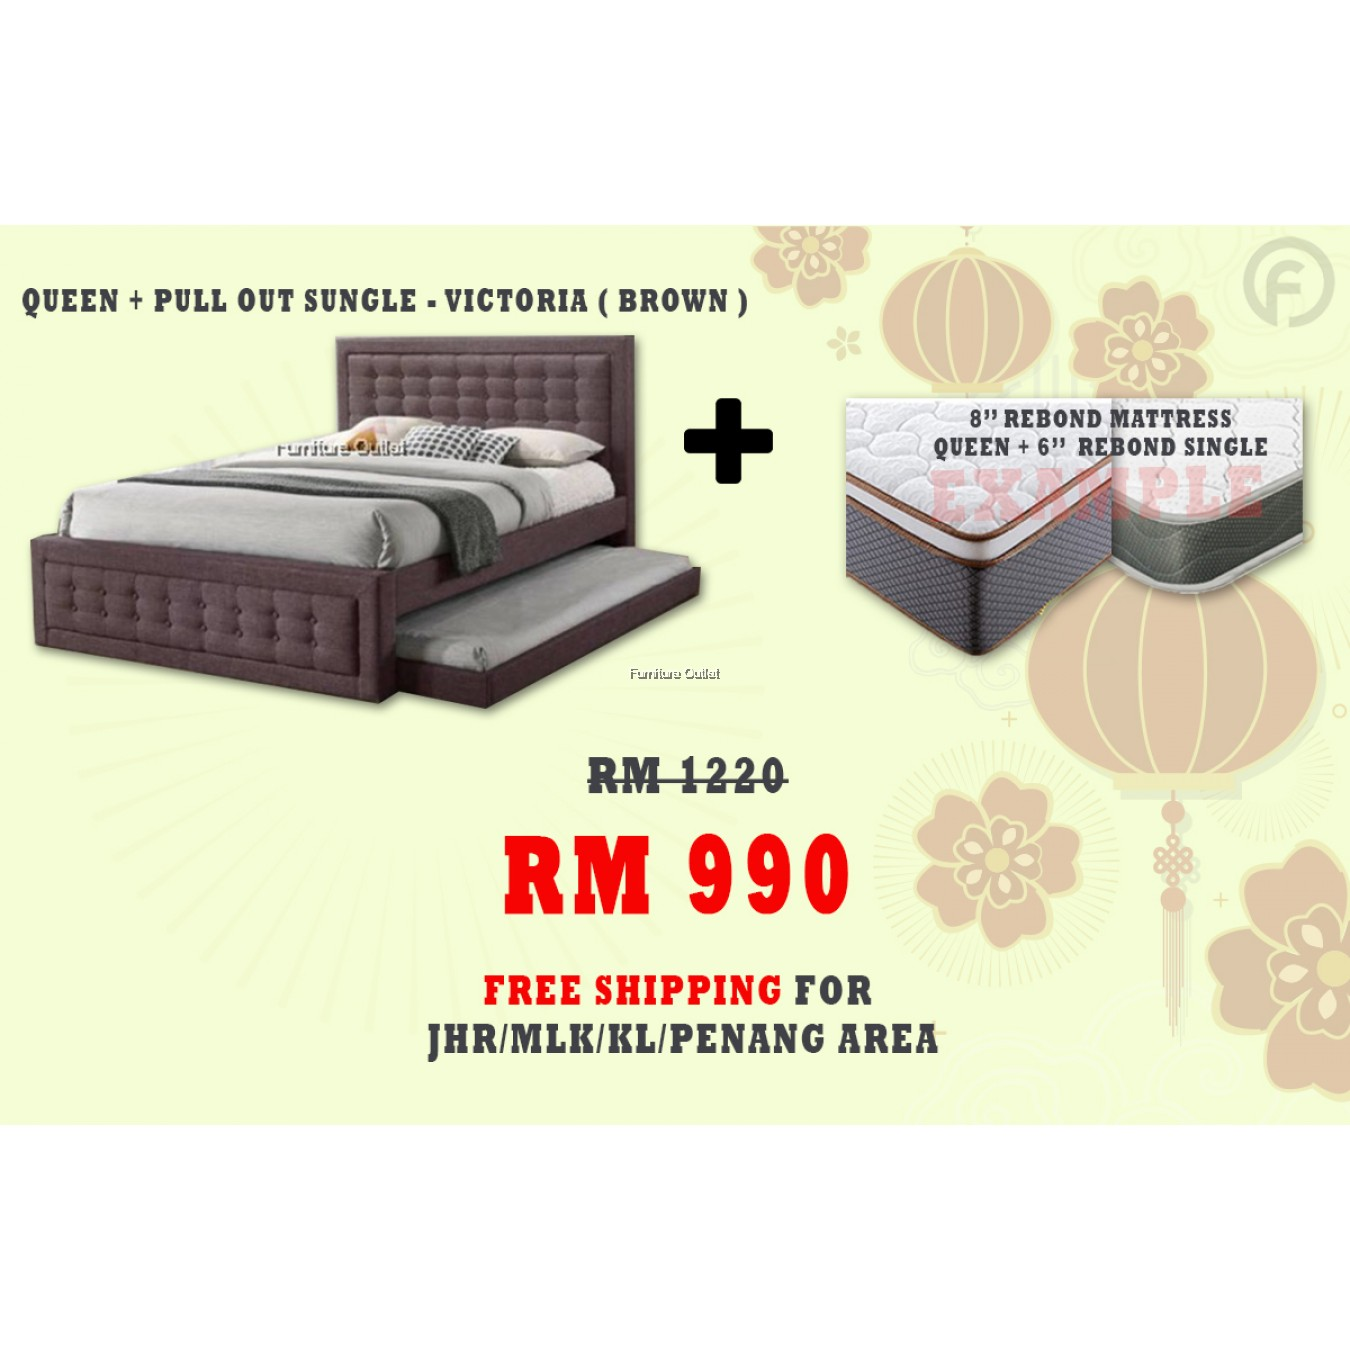 [ FREE SHIPPING ] VICTORIA QUEEN + PULLOUT SINGLE BED + 6'' SINGLE 8'' QUEEN REBOND MATTRESS